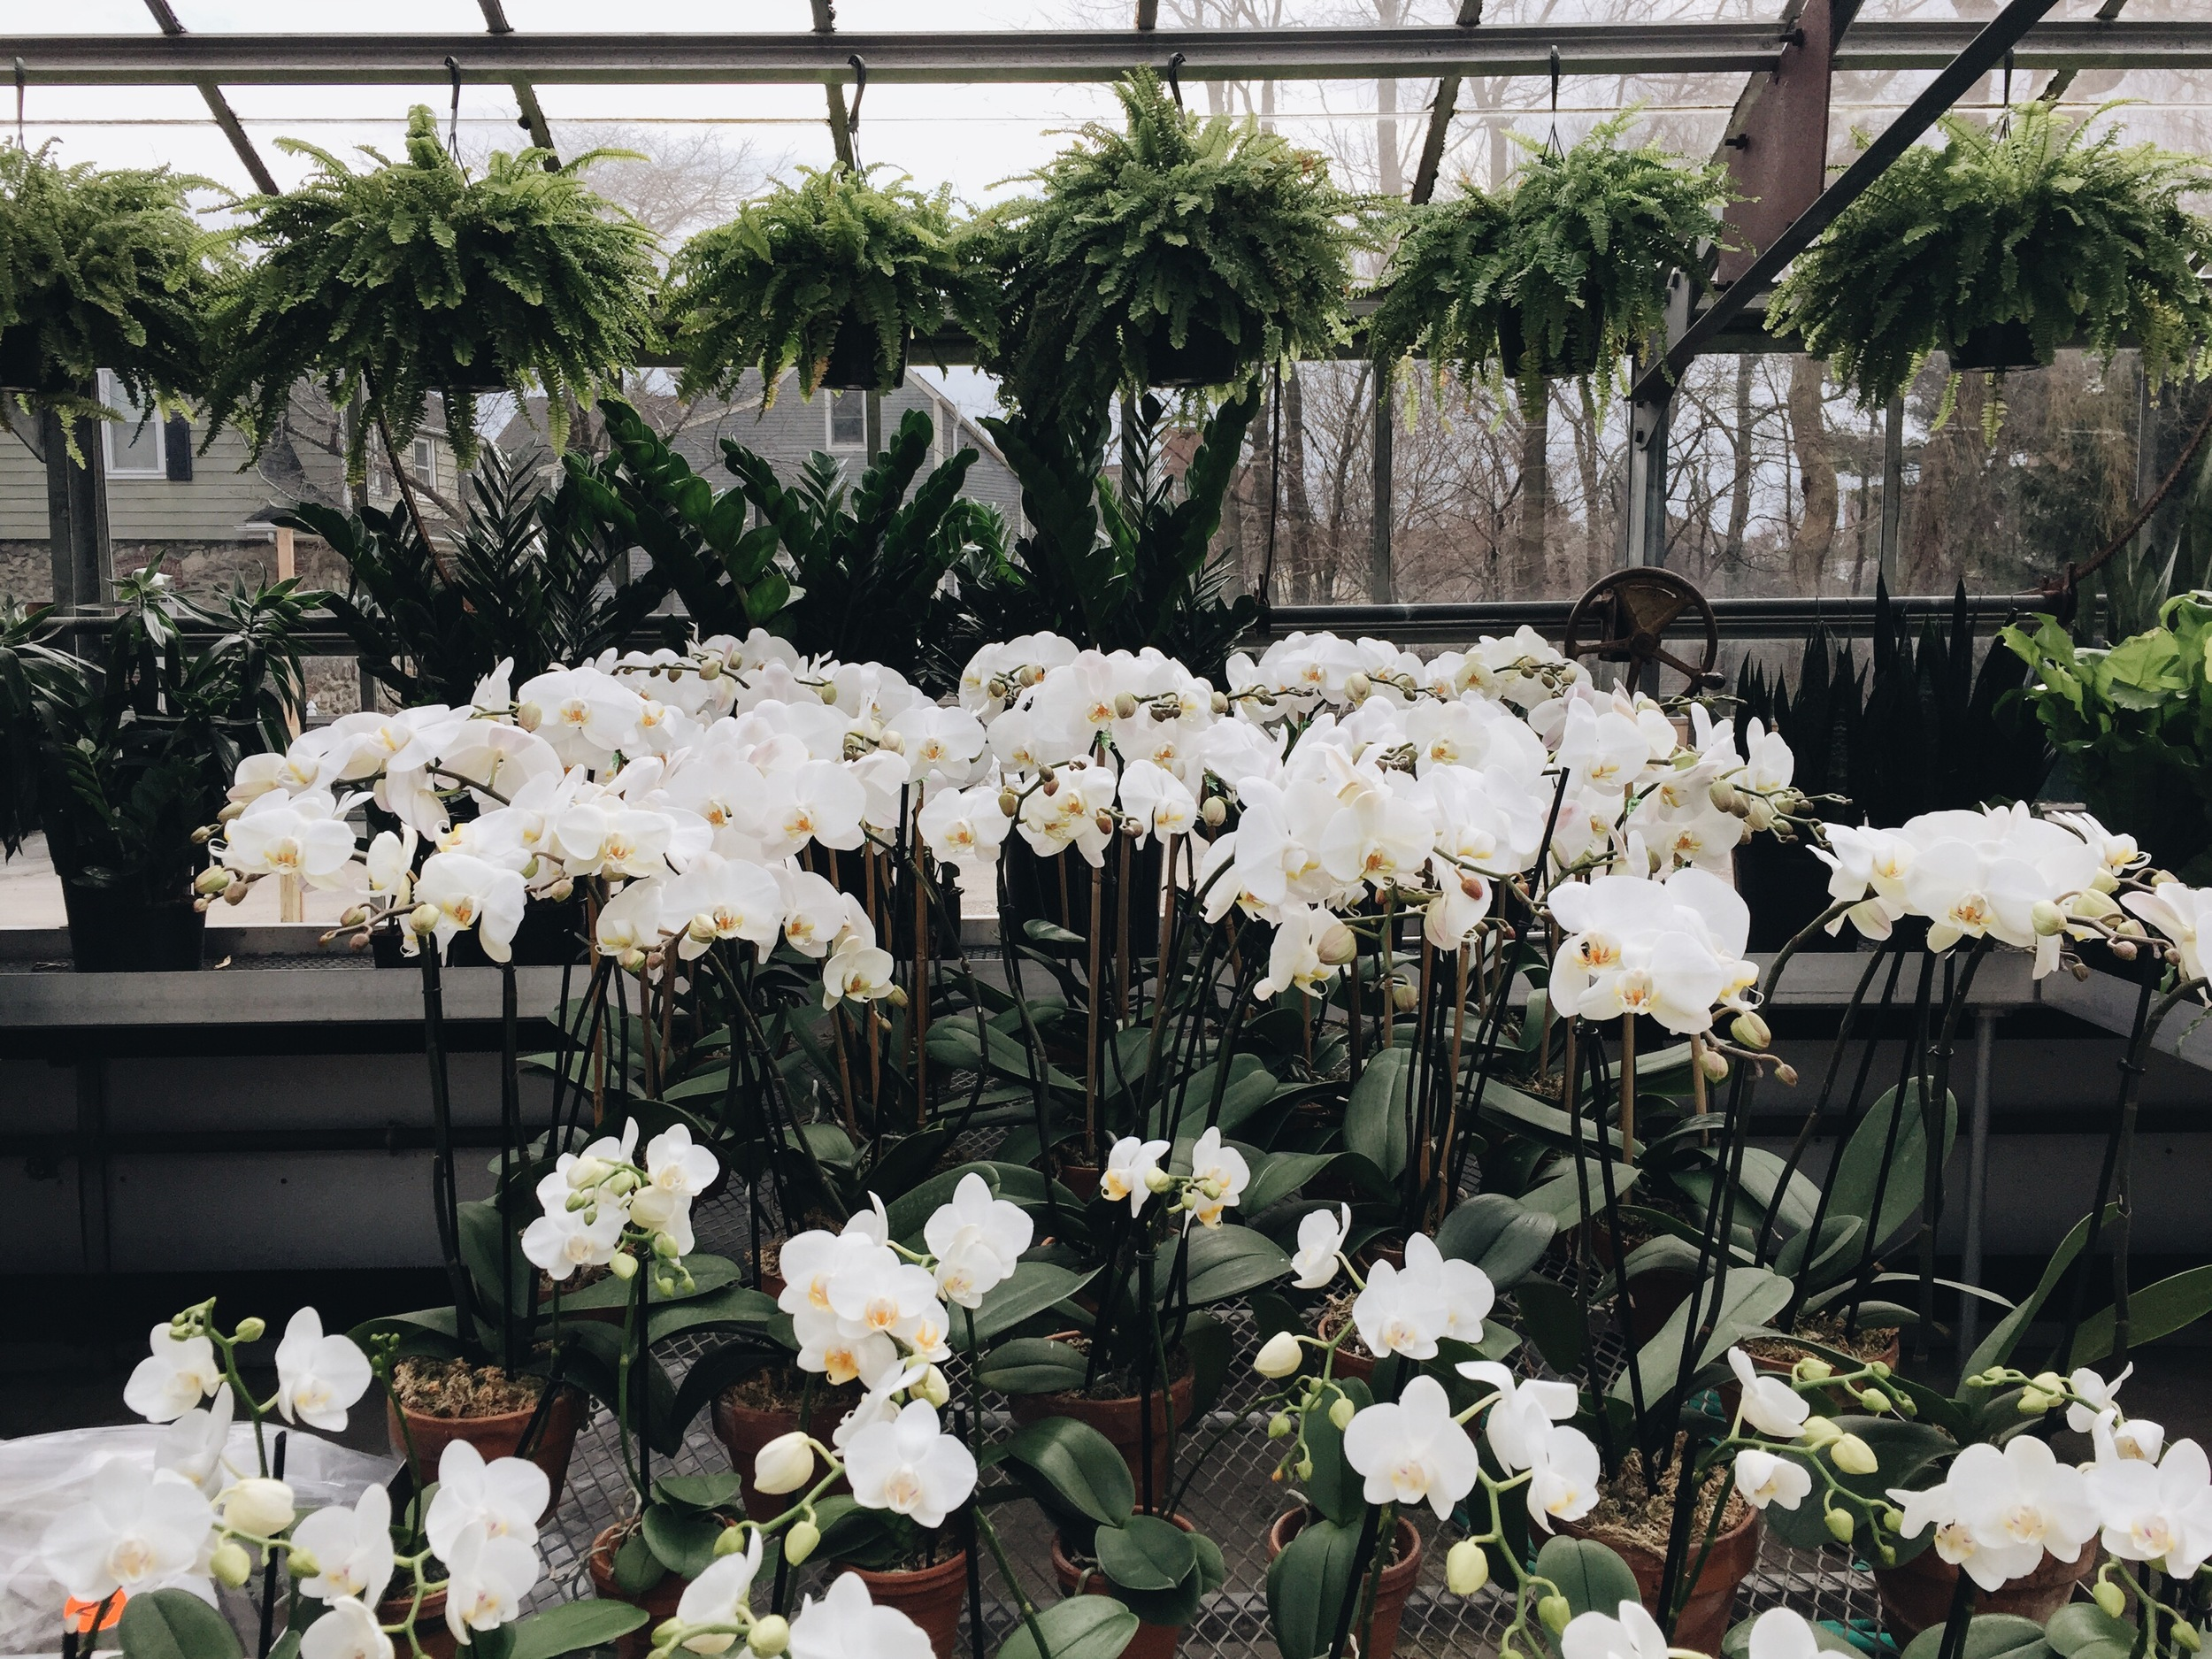 {Some beautiful orchids from a trip to Winston Flowers)